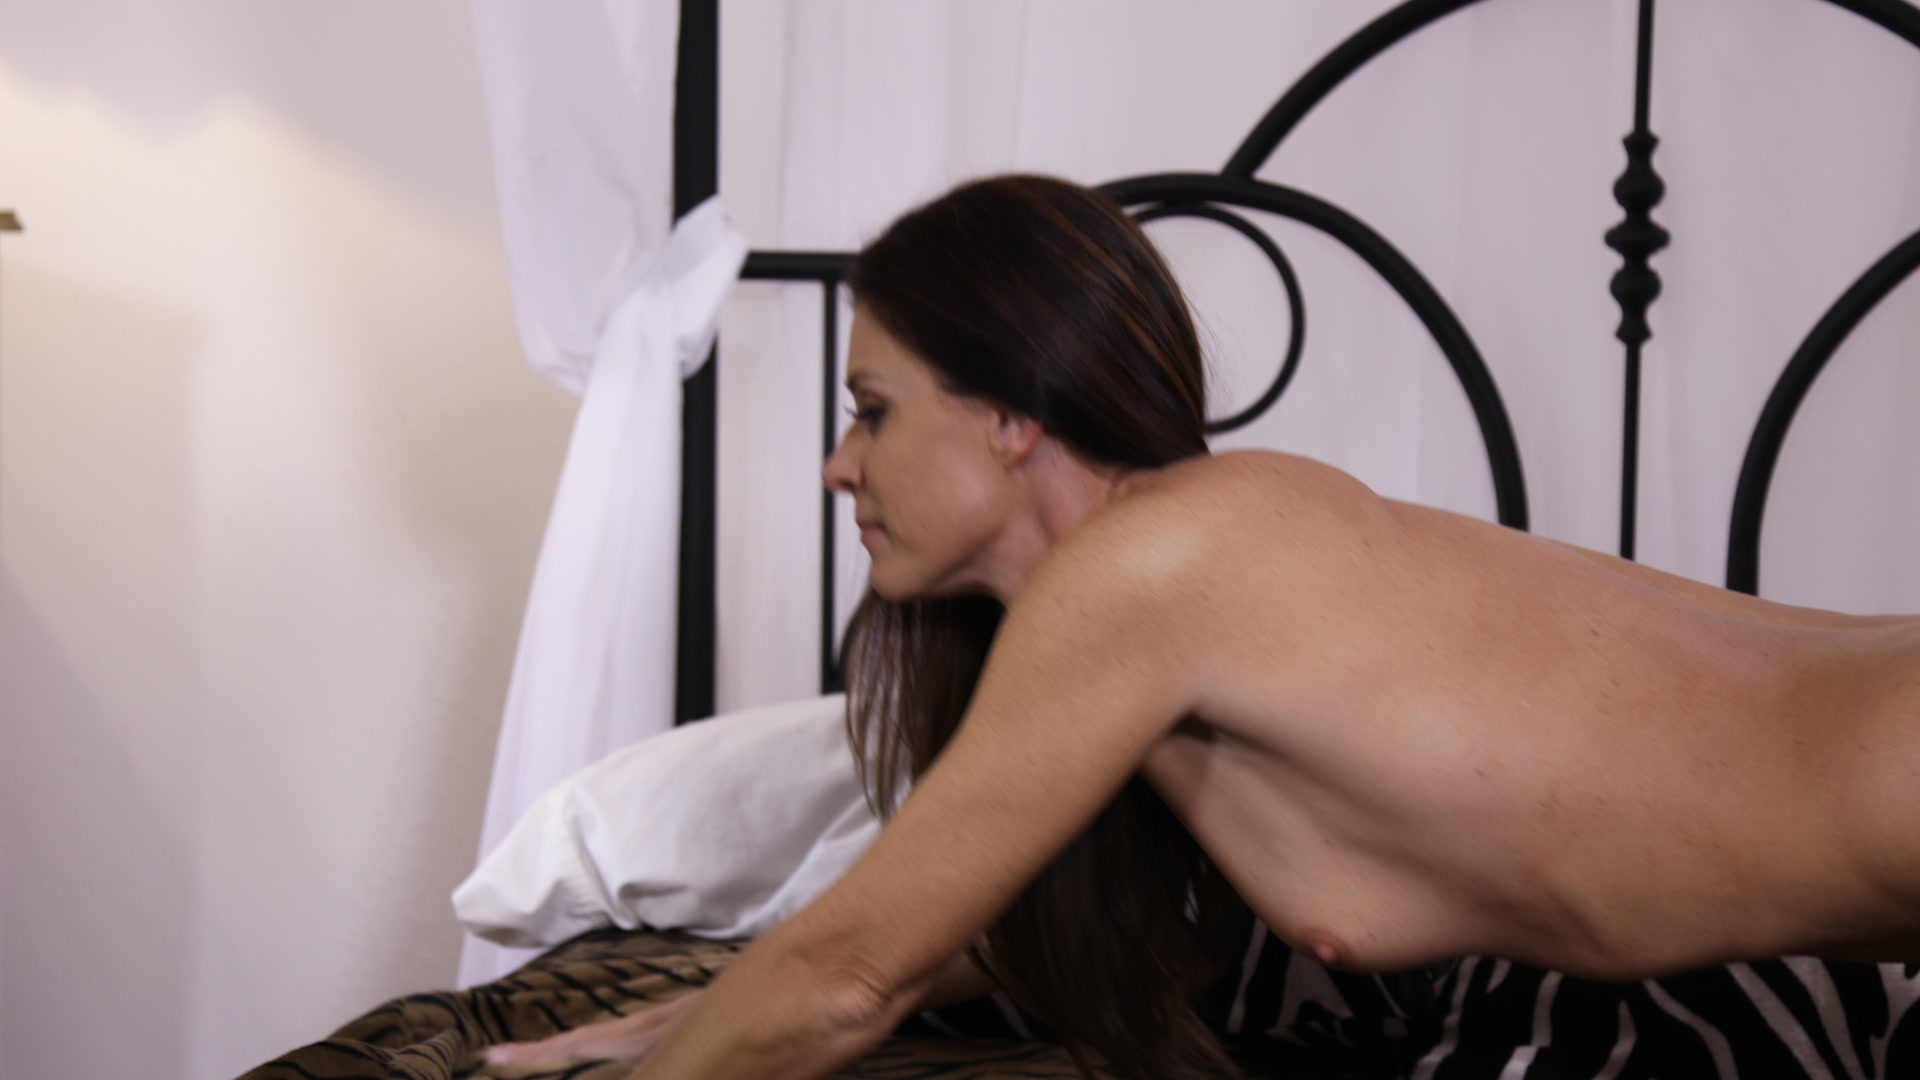 India summer squirting